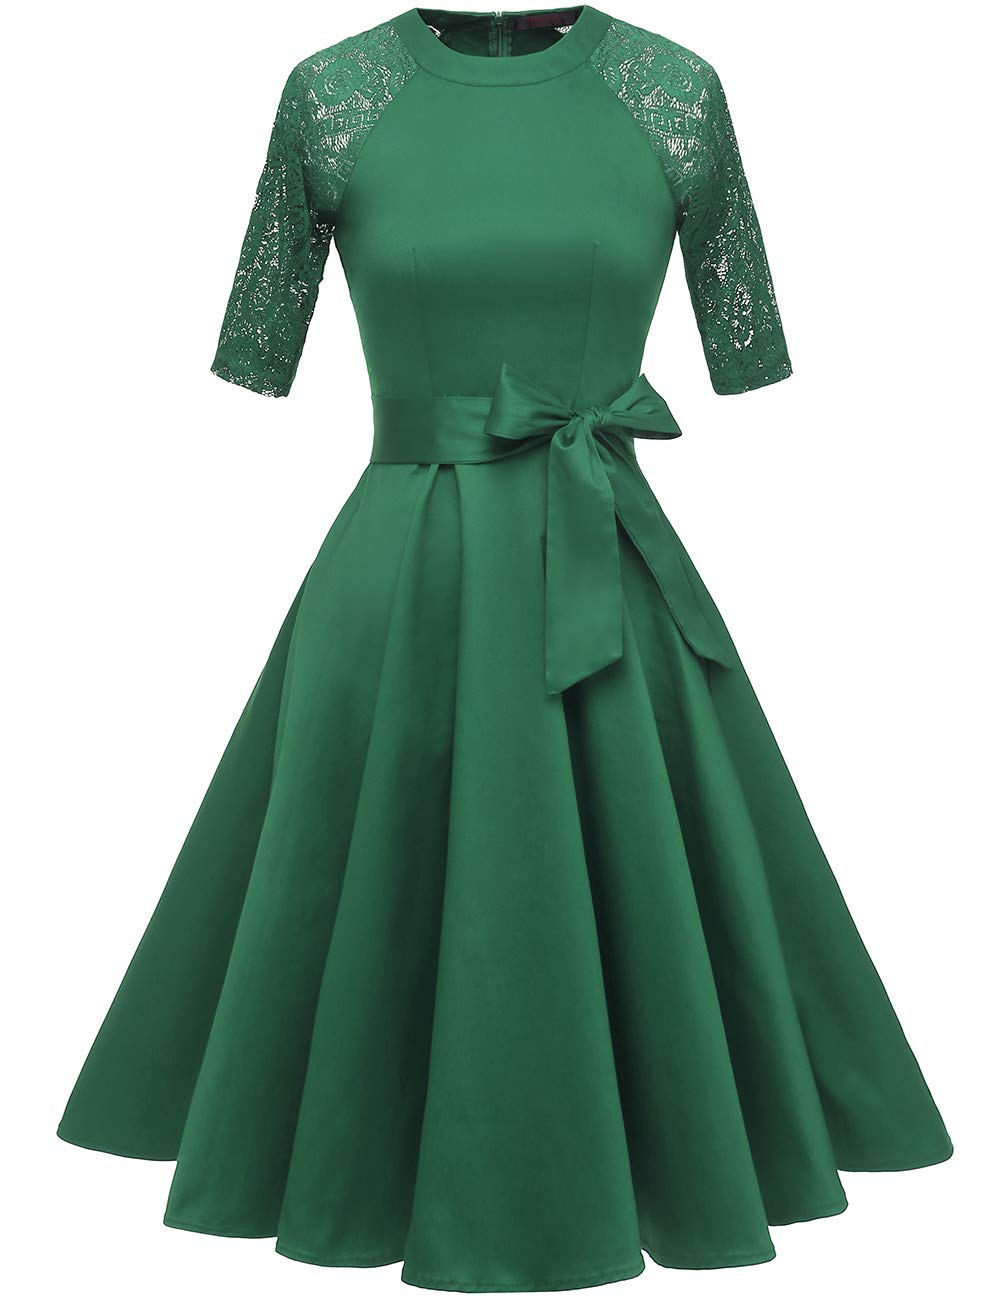 DRESSTELLS Women's Vintage 50's Retro Rockabilly Cocktail 3/4 Sleeves A-line Prom Party Dress